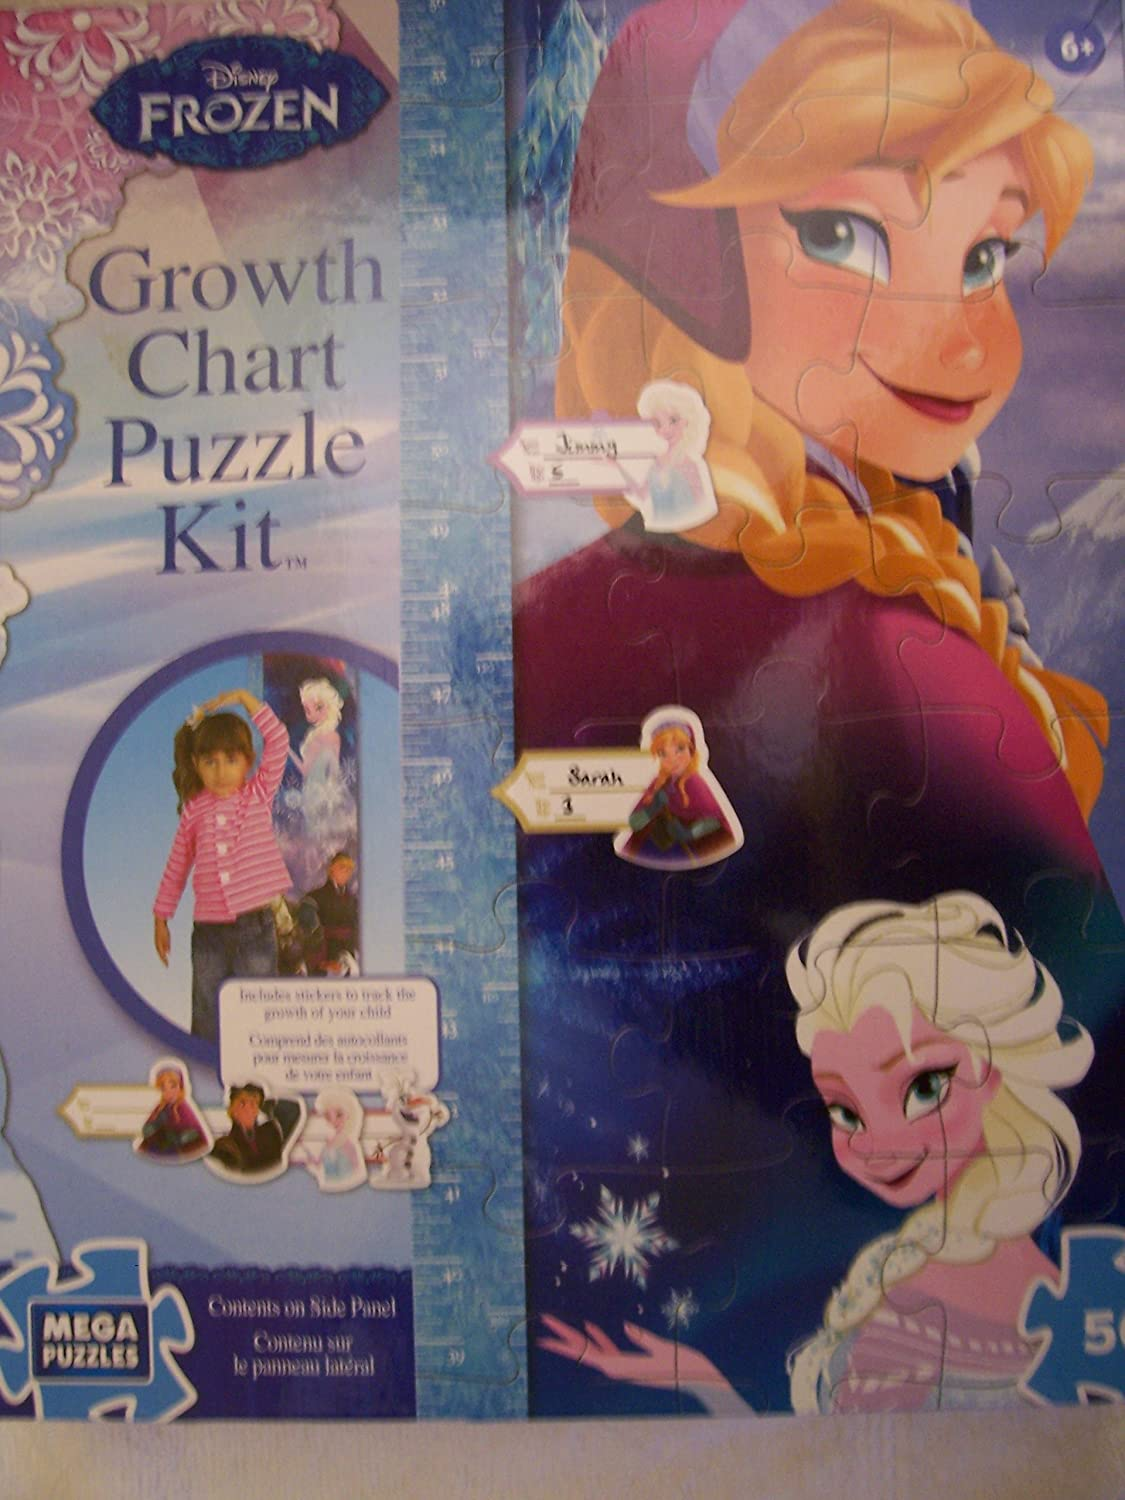 Amazon disney frozen growth chart puzzle kit by mega brands amazon disney frozen growth chart puzzle kit by mega brands toys games nvjuhfo Image collections